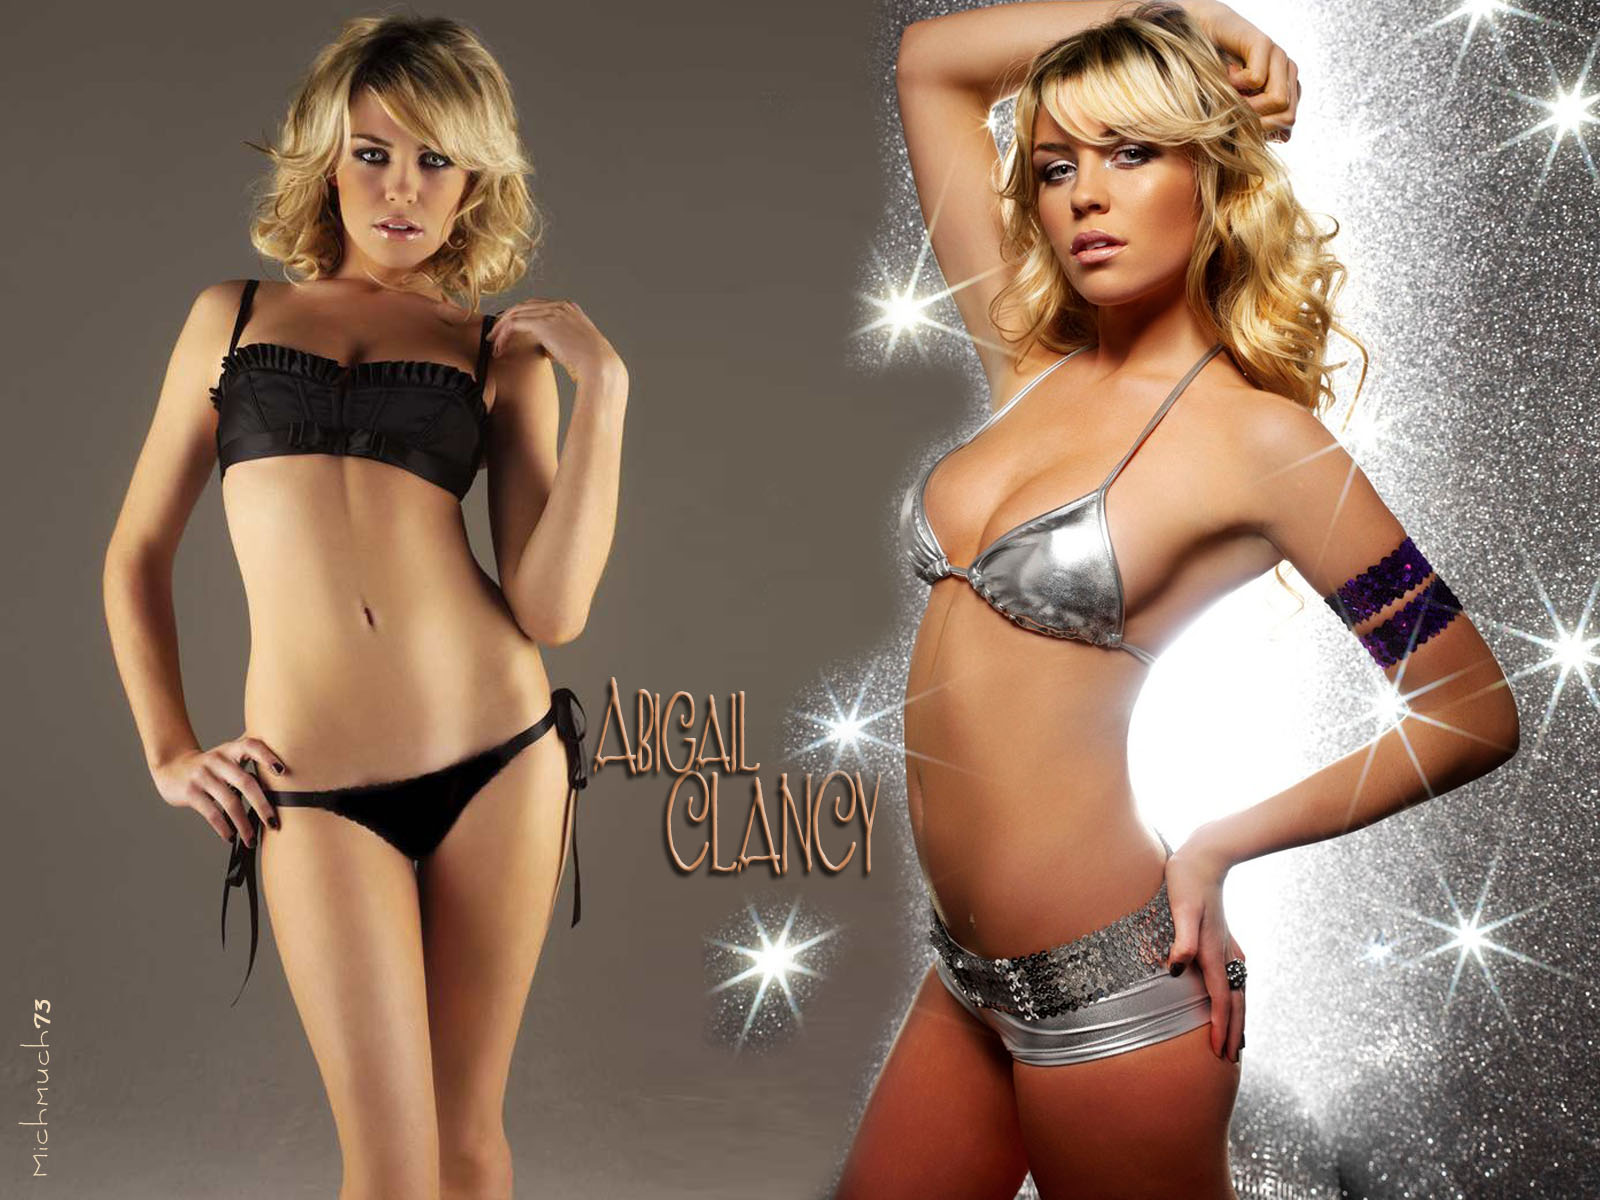 Abigail Clancy wallpaper